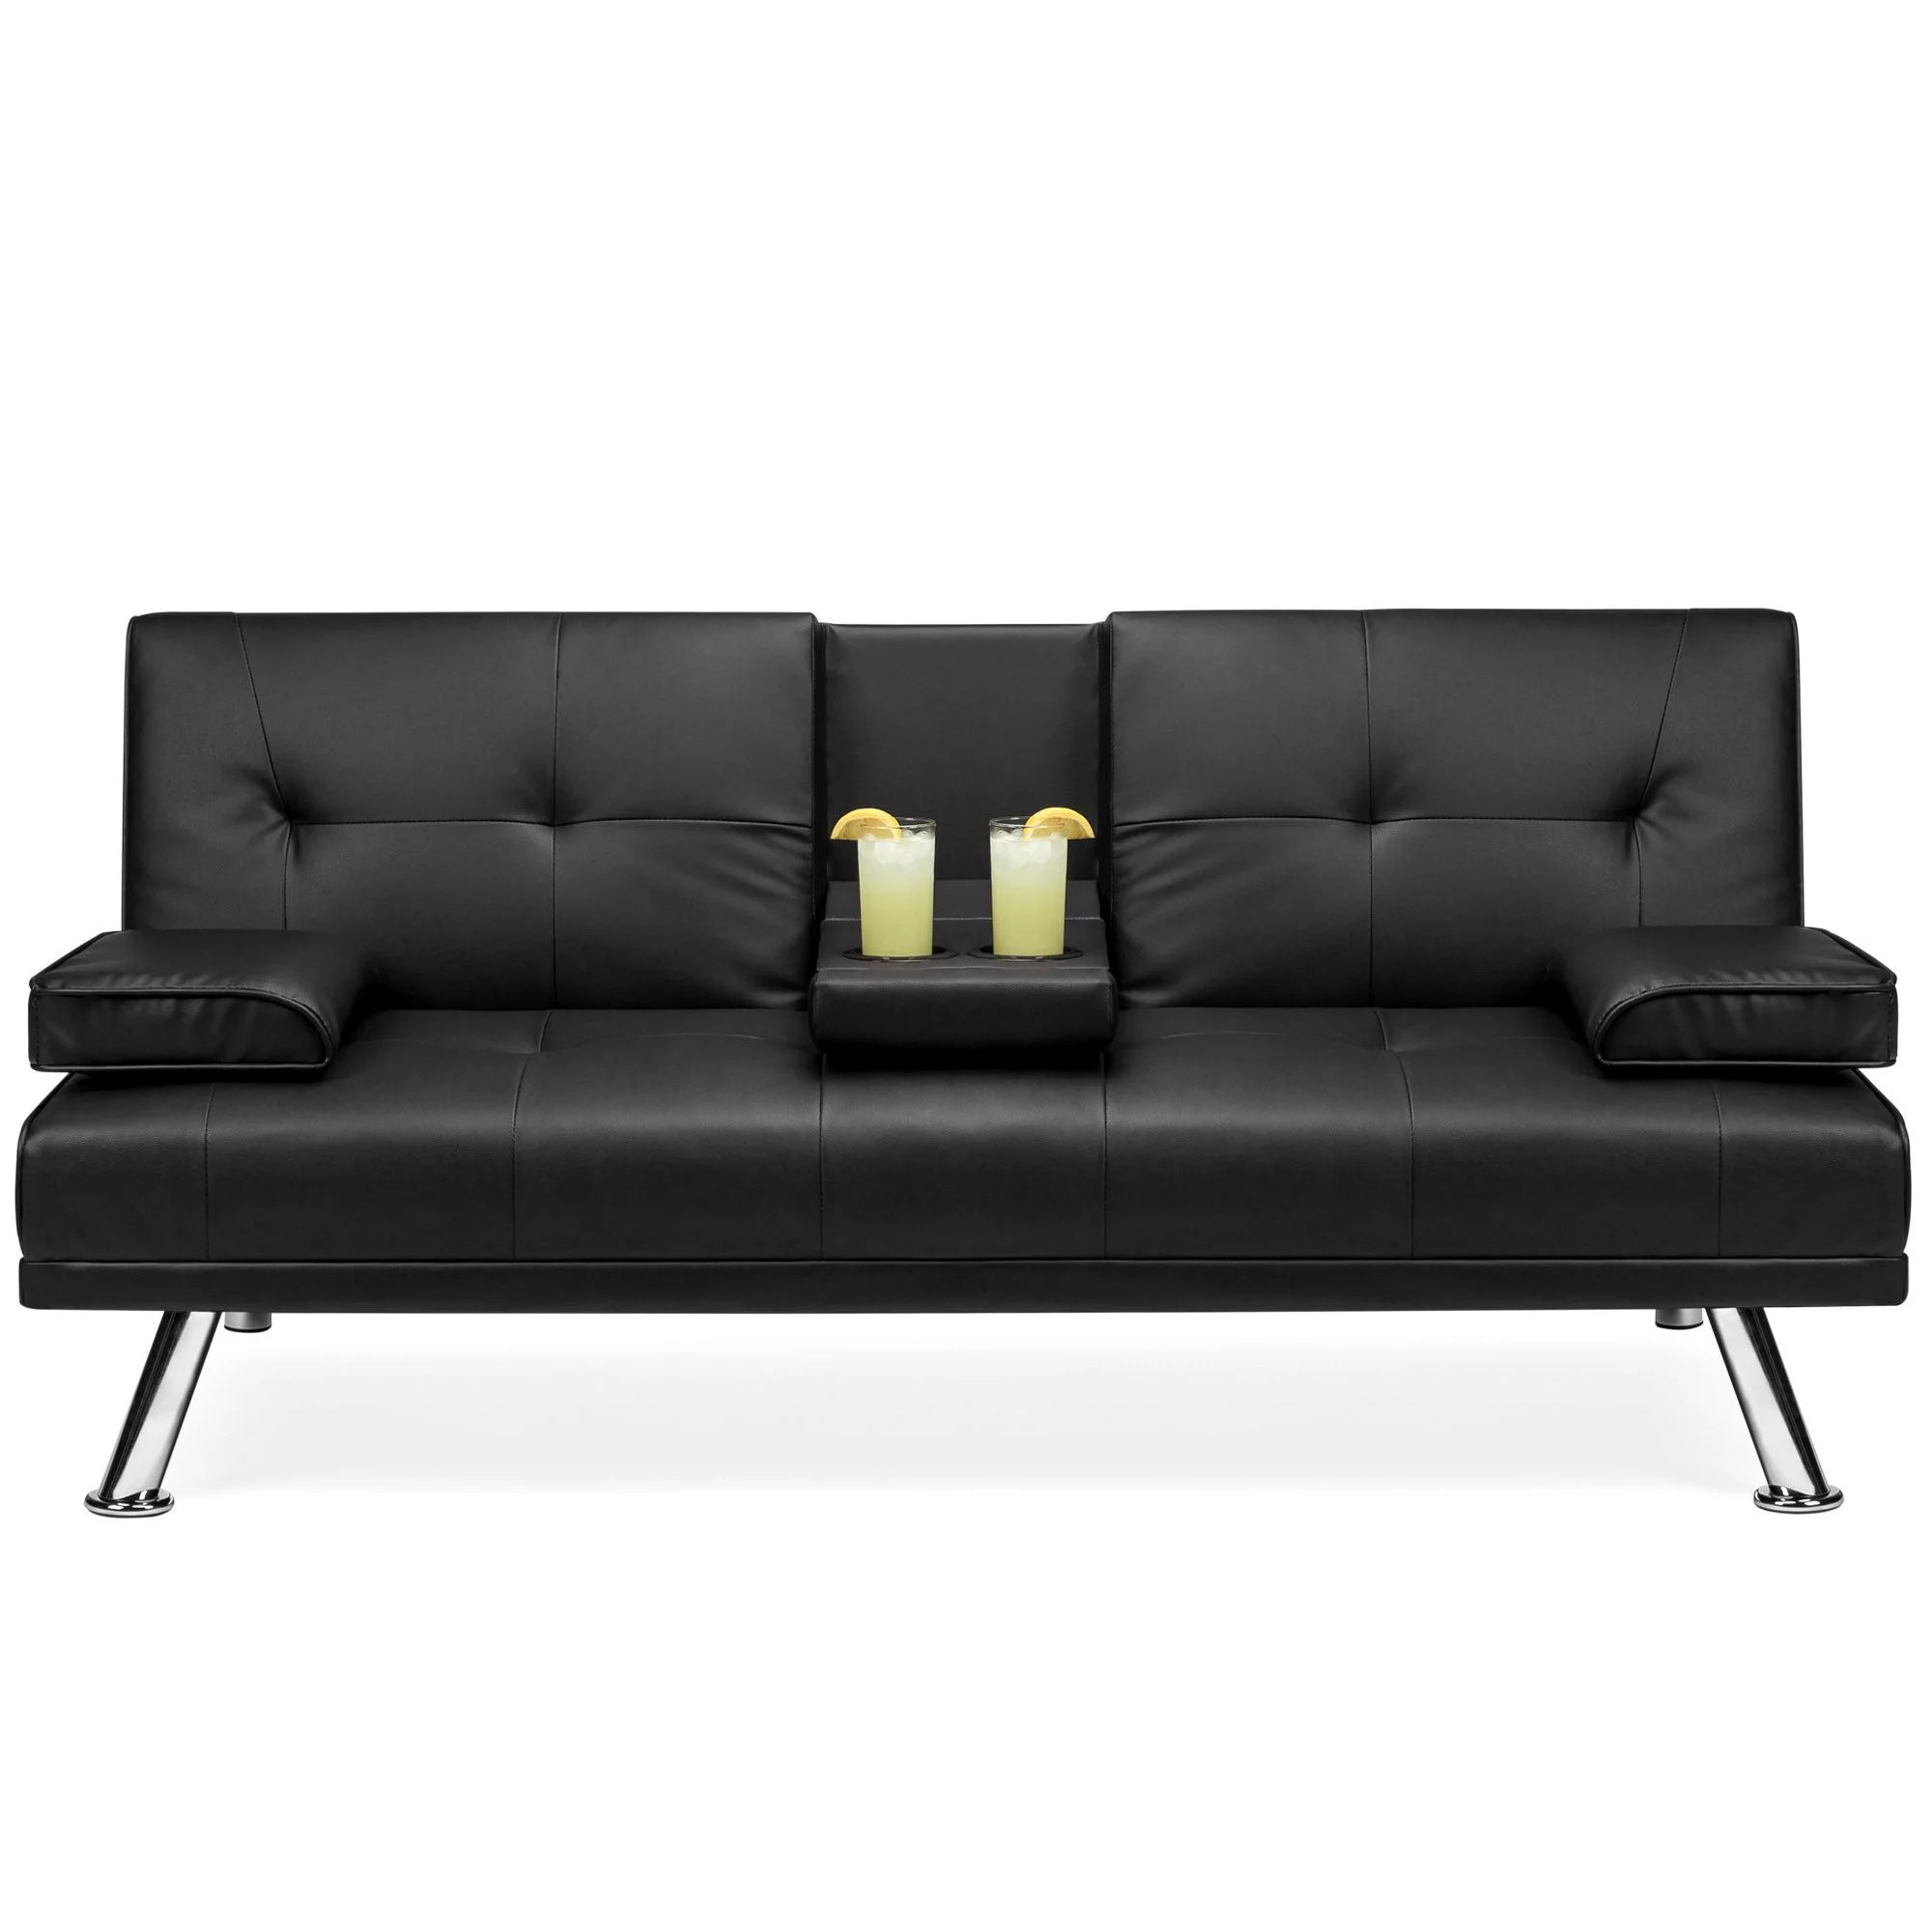 best choice products modern faux leather convertible futon sofa w removable armrests metal legs 2 cupholders black